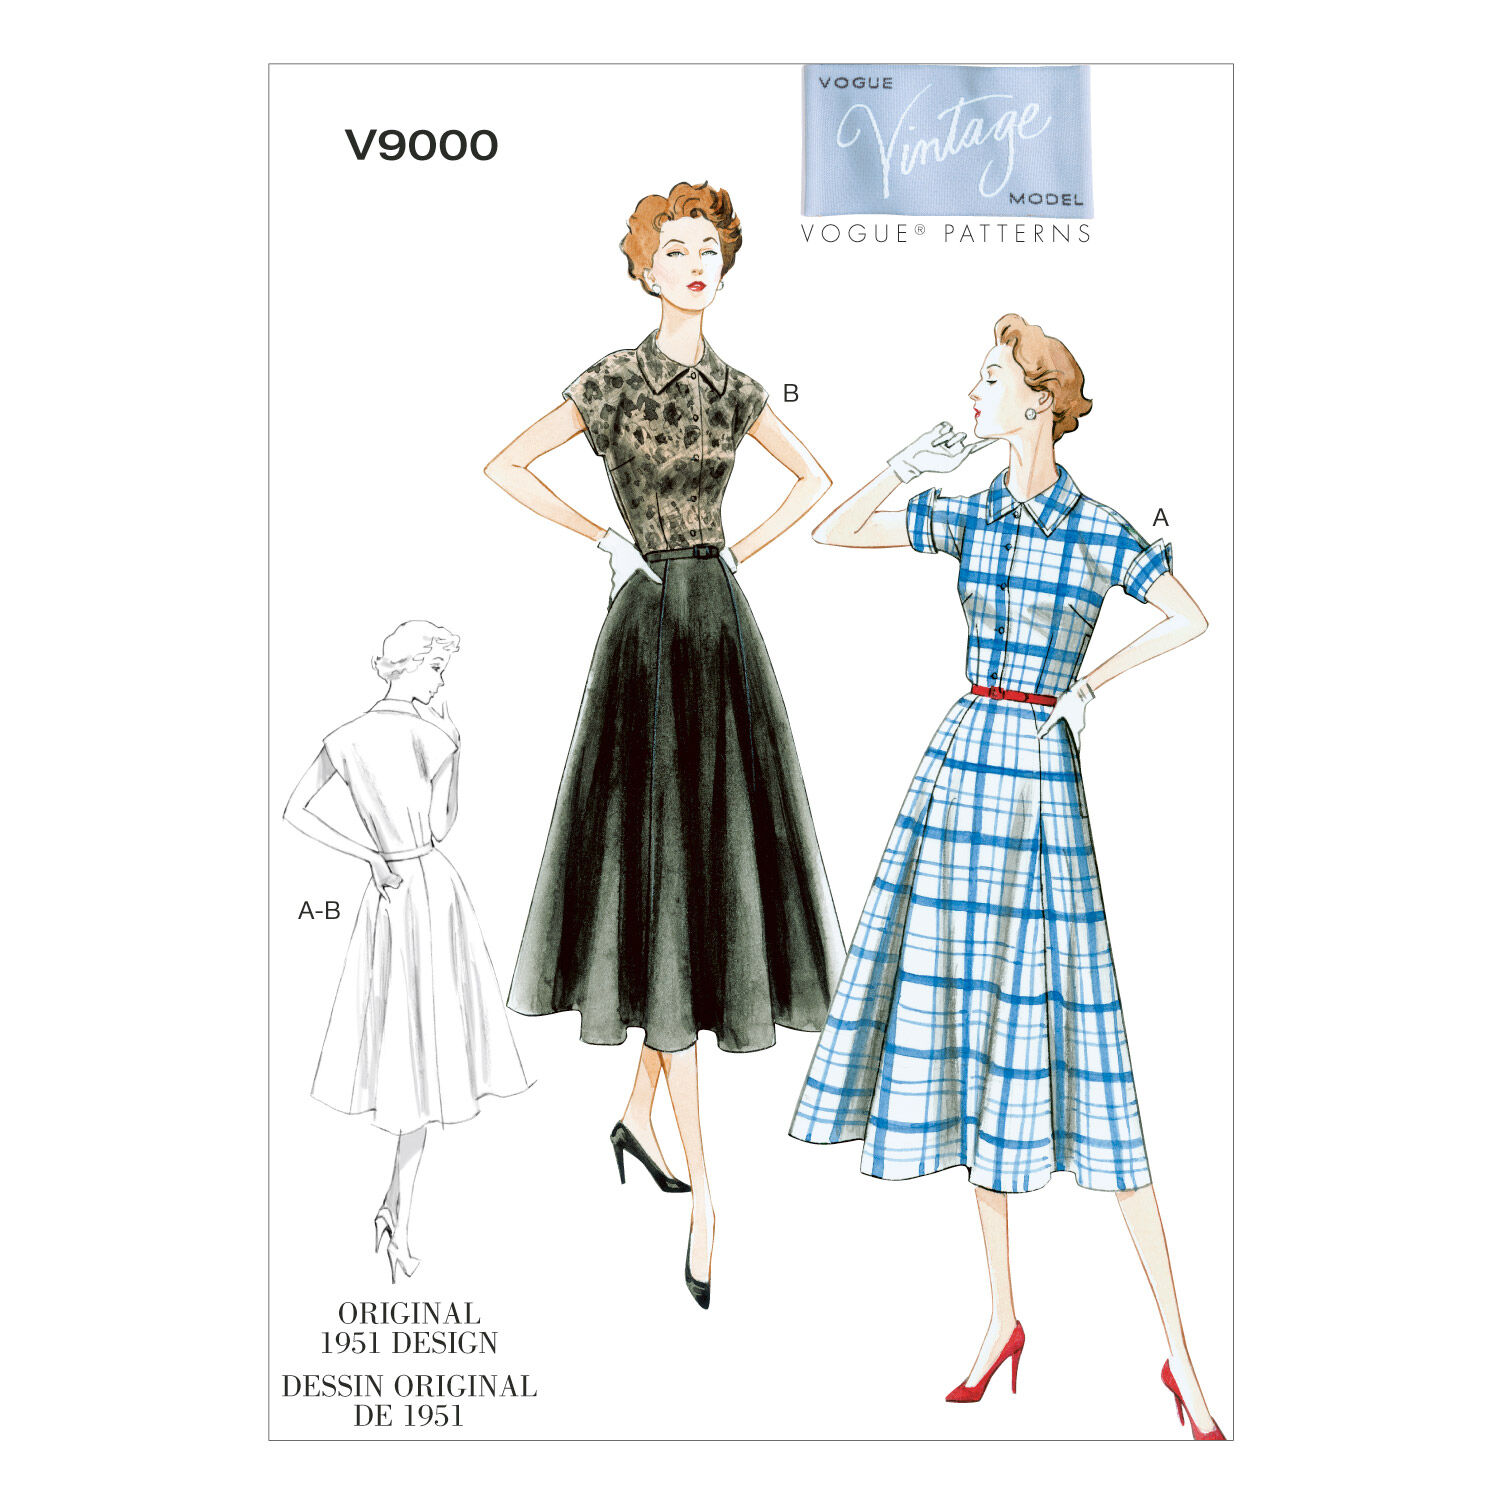 1950s Sewing Patterns | Dresses, Skirts, Tops, Mens 1951 Vogue Patterns Misses Dress - V9000 $18.00 AT vintagedancer.com